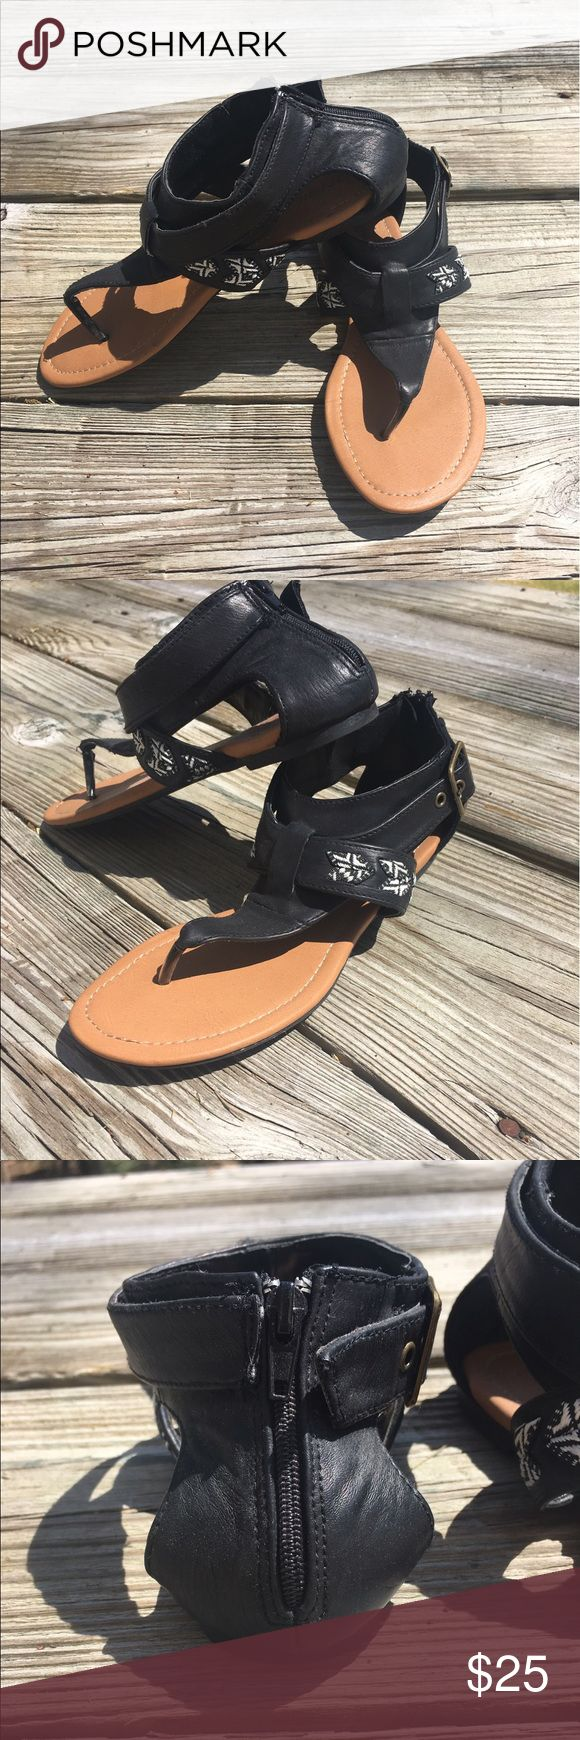 O'Neill Zip Up Sandal O'Neill Zip up black sandal with small Aztec design. NEW NEVER WORN! O'Neill Shoes Sandals